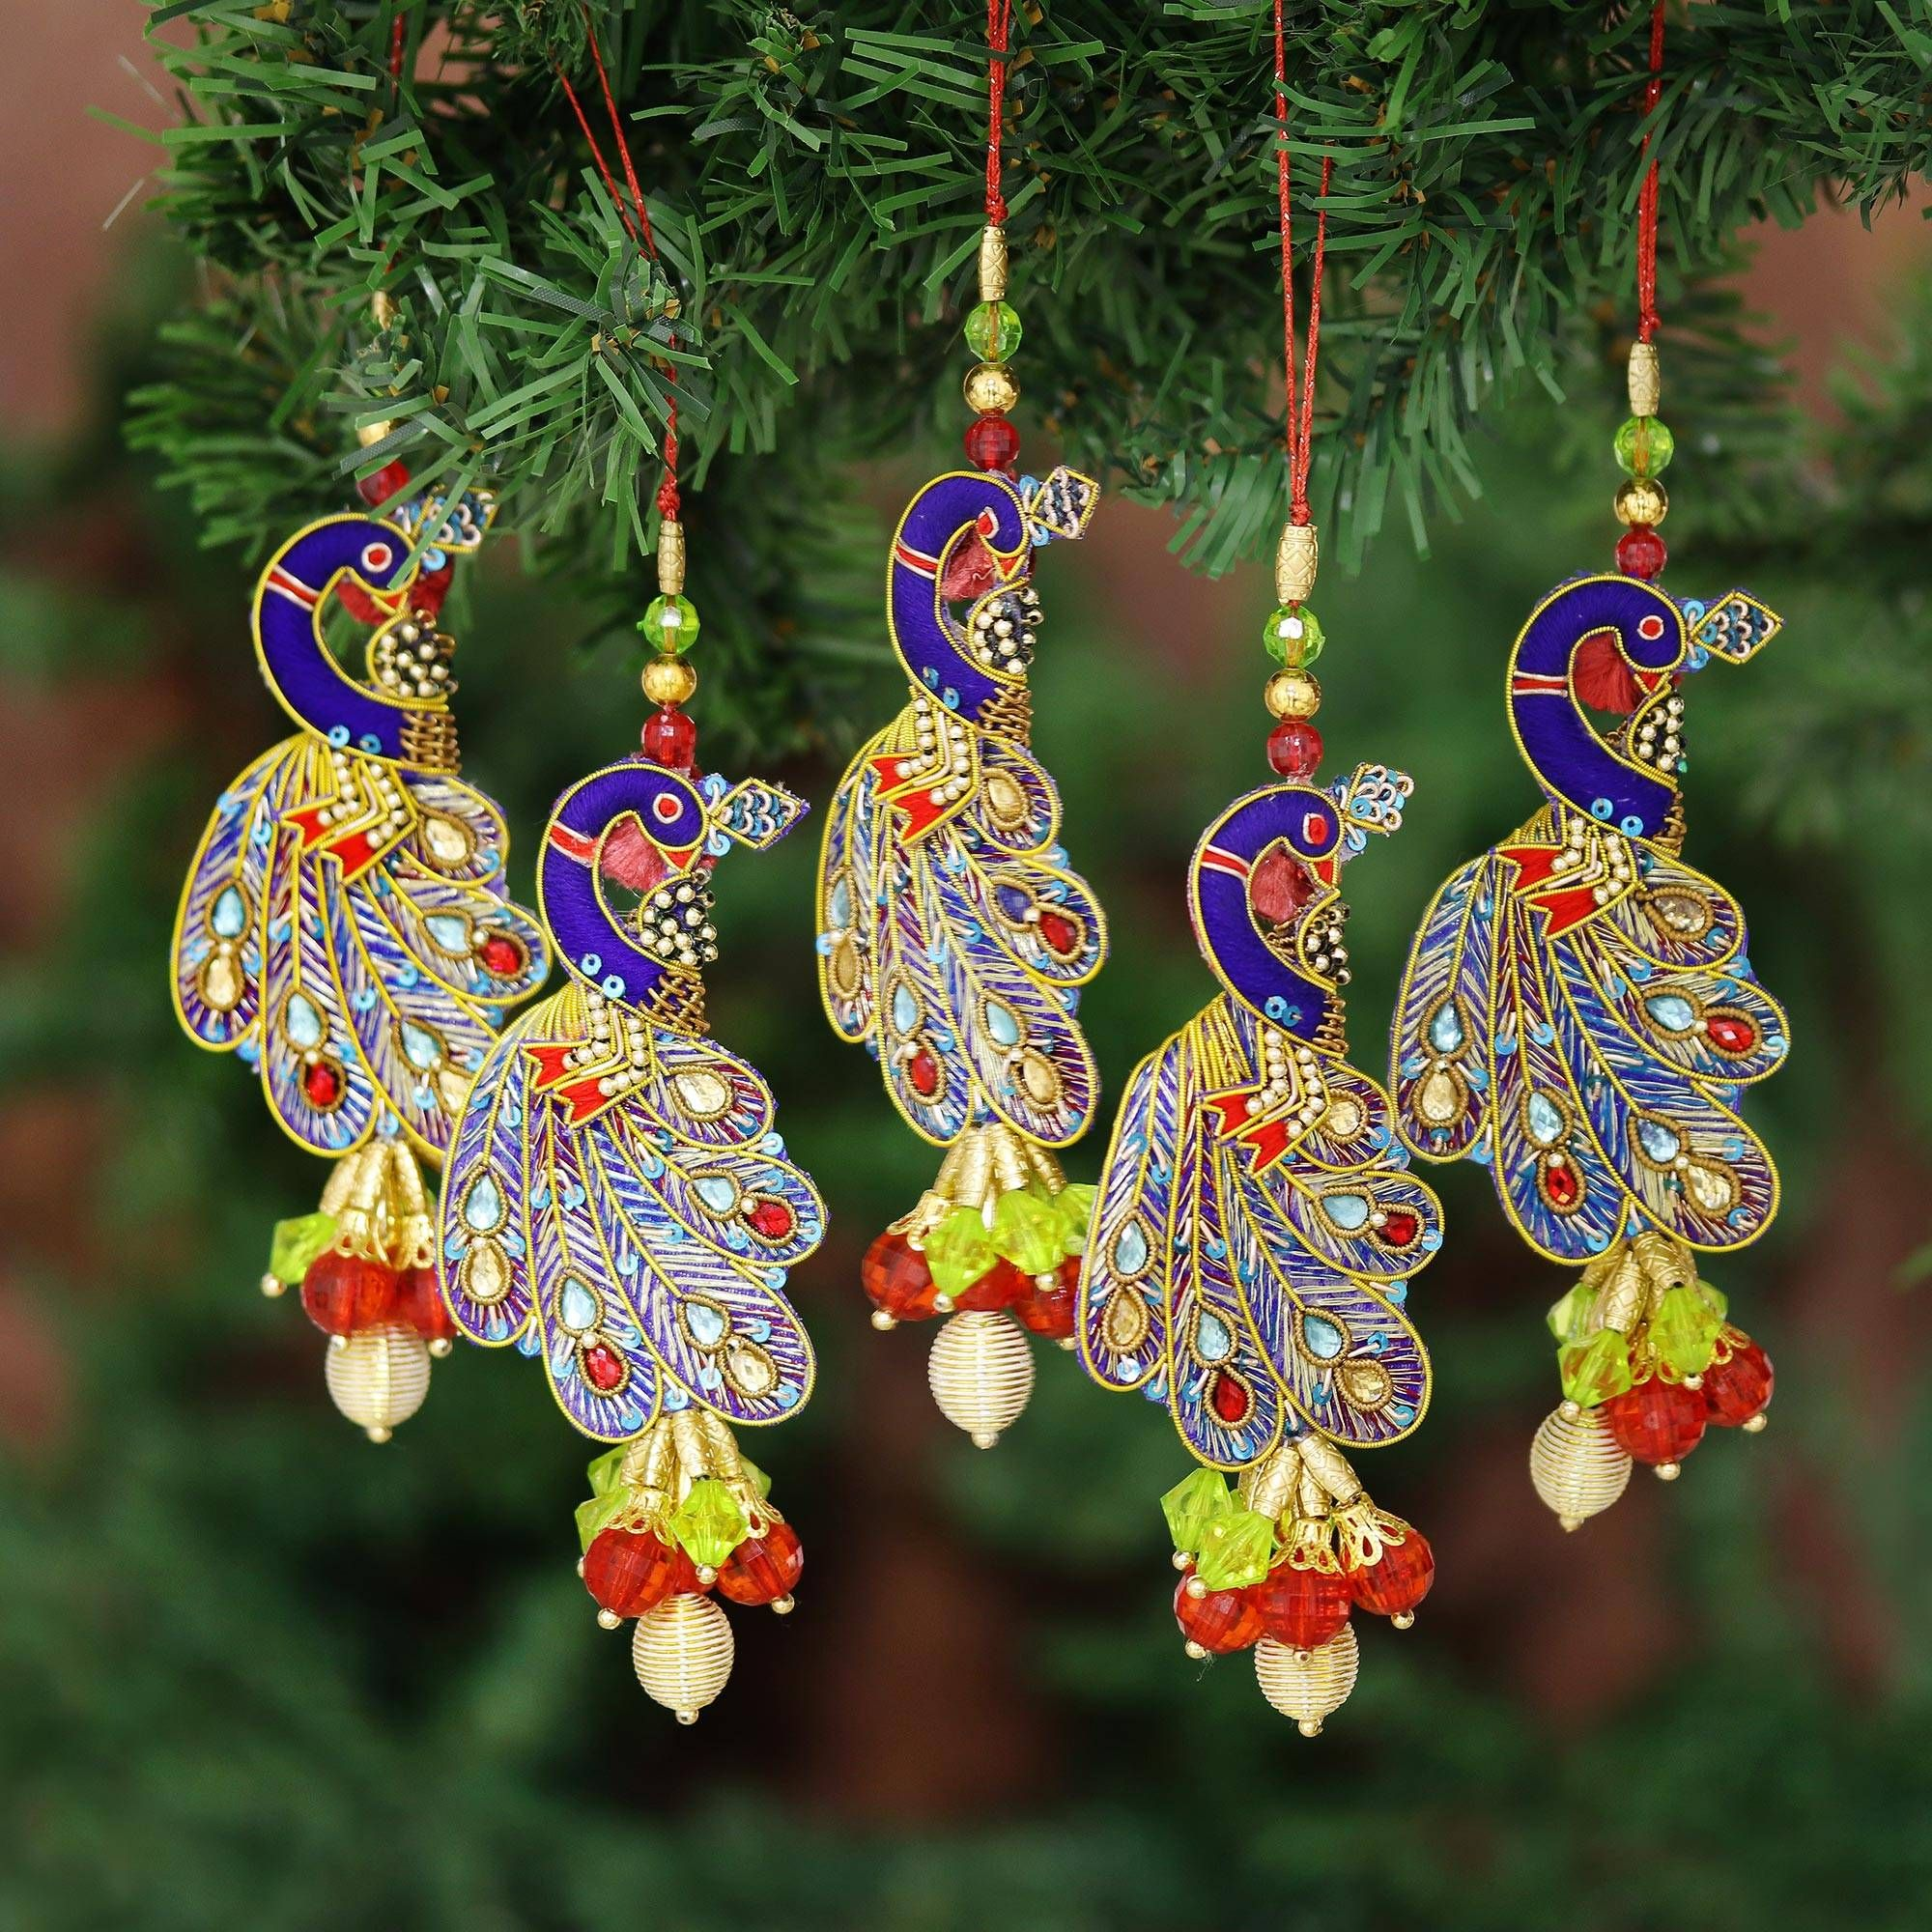 Beaded Ornaments Mughal Peacocks Set Of 5 In 2021 Beaded Christmas Ornaments Ornament Set Christmas Ornament Sets